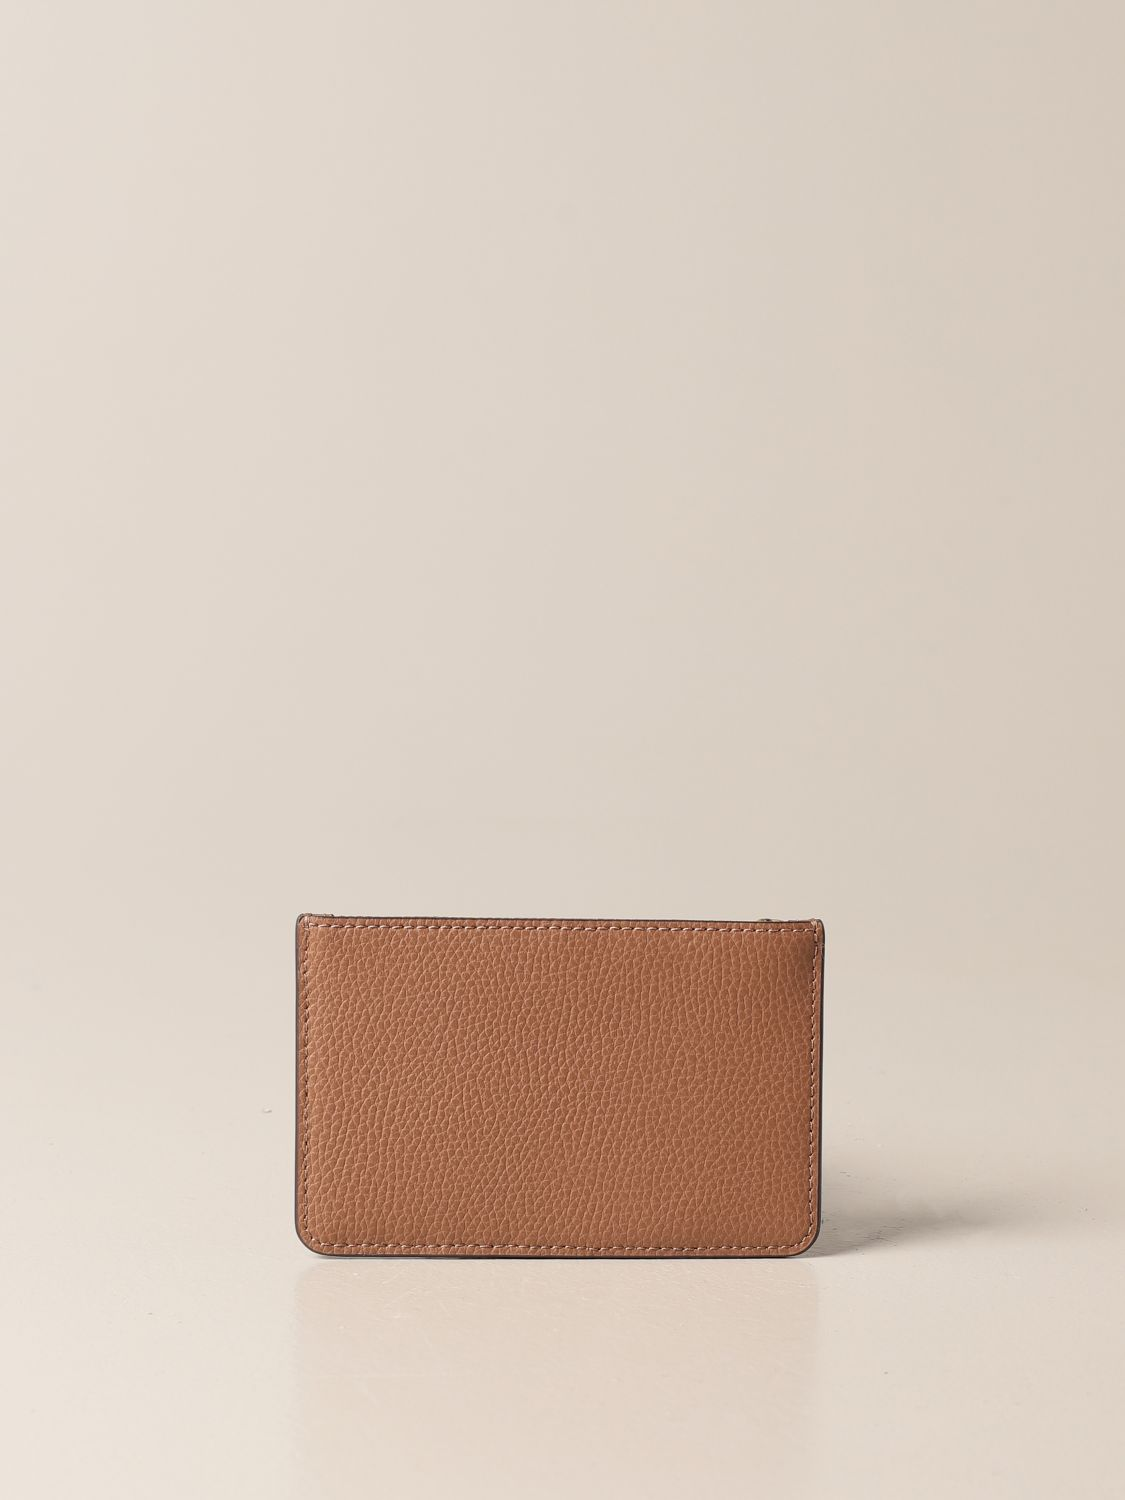 Wallet Tory Burch: Tory Burch credit card holder in hammered leather with logo and zip brown 2